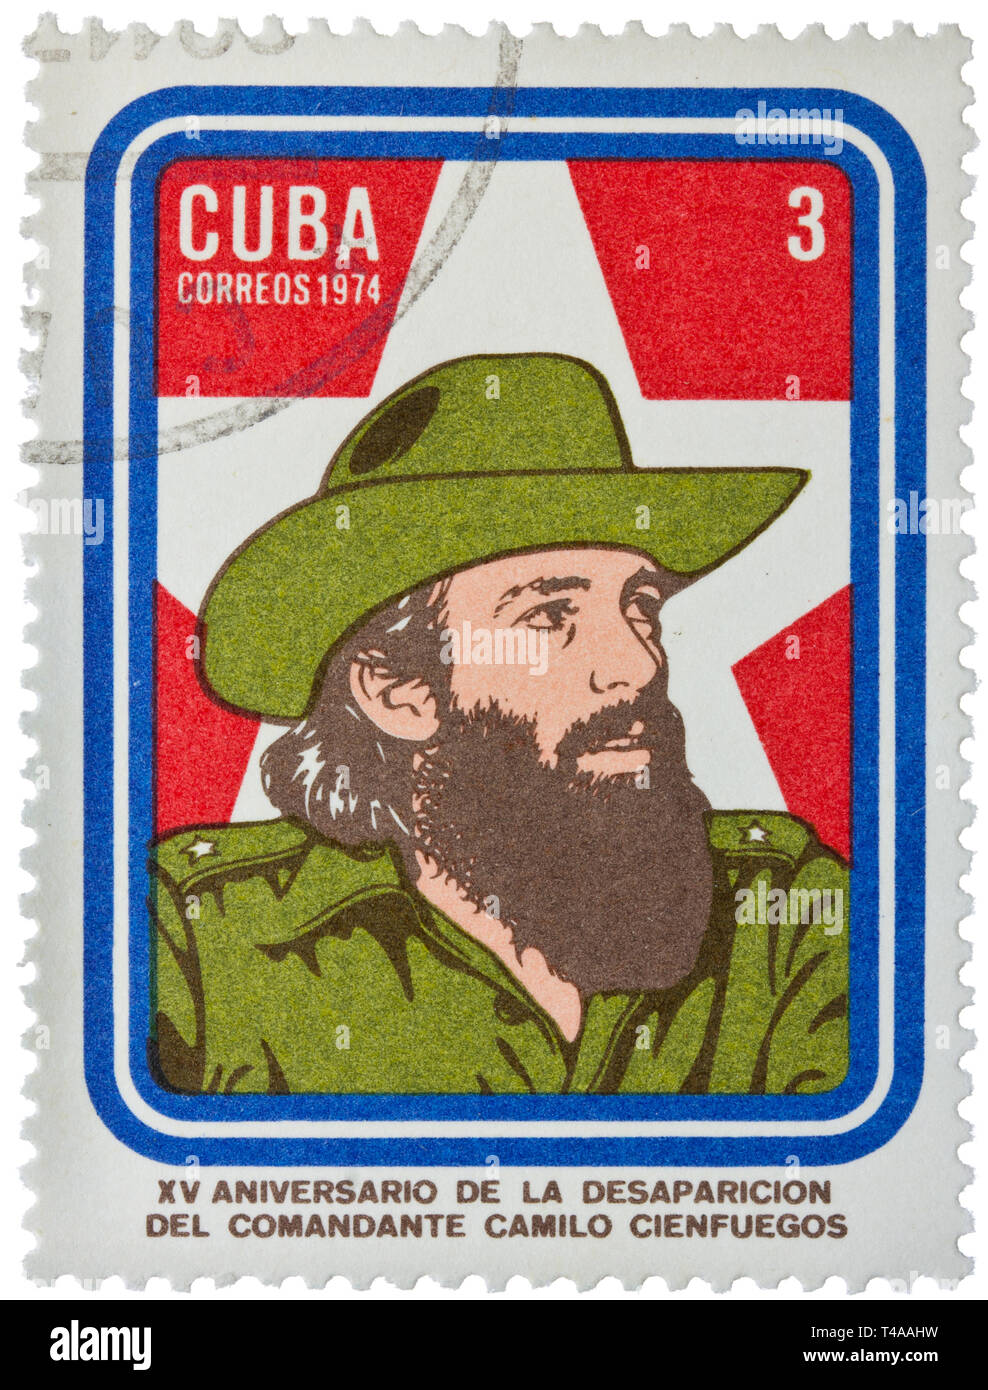 CUBA - CIRCA 1974: A Stamp printed in Cuba shows portrait of Comandante Camilo Cienfuegos, circa 1974 - Stock Image